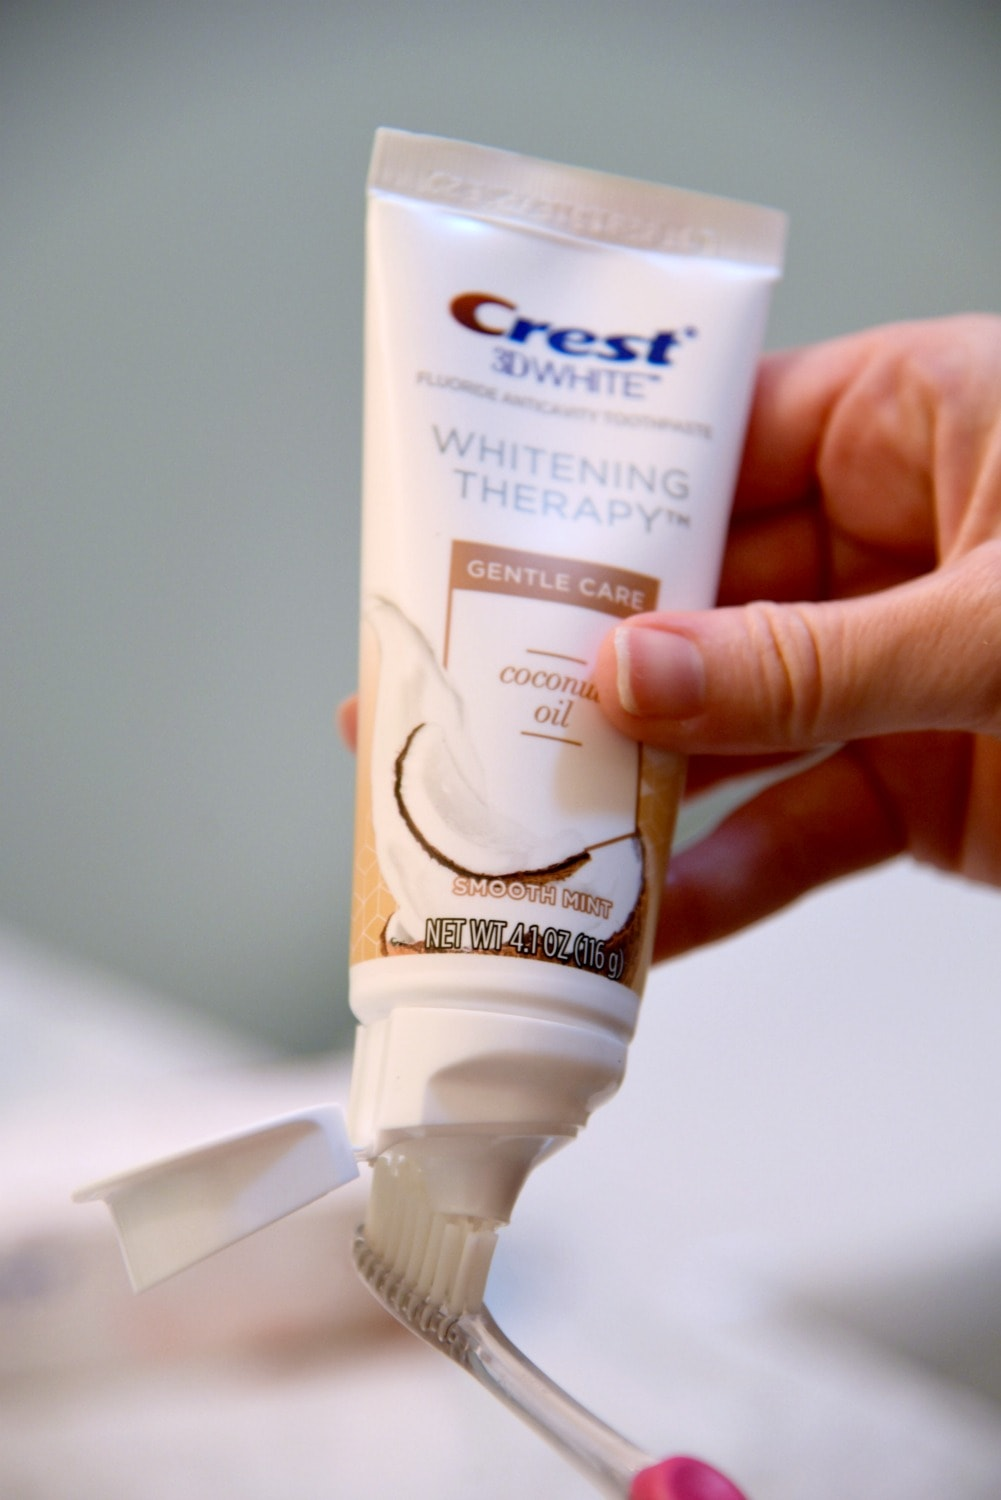 Crest Coconut oil toothpaste